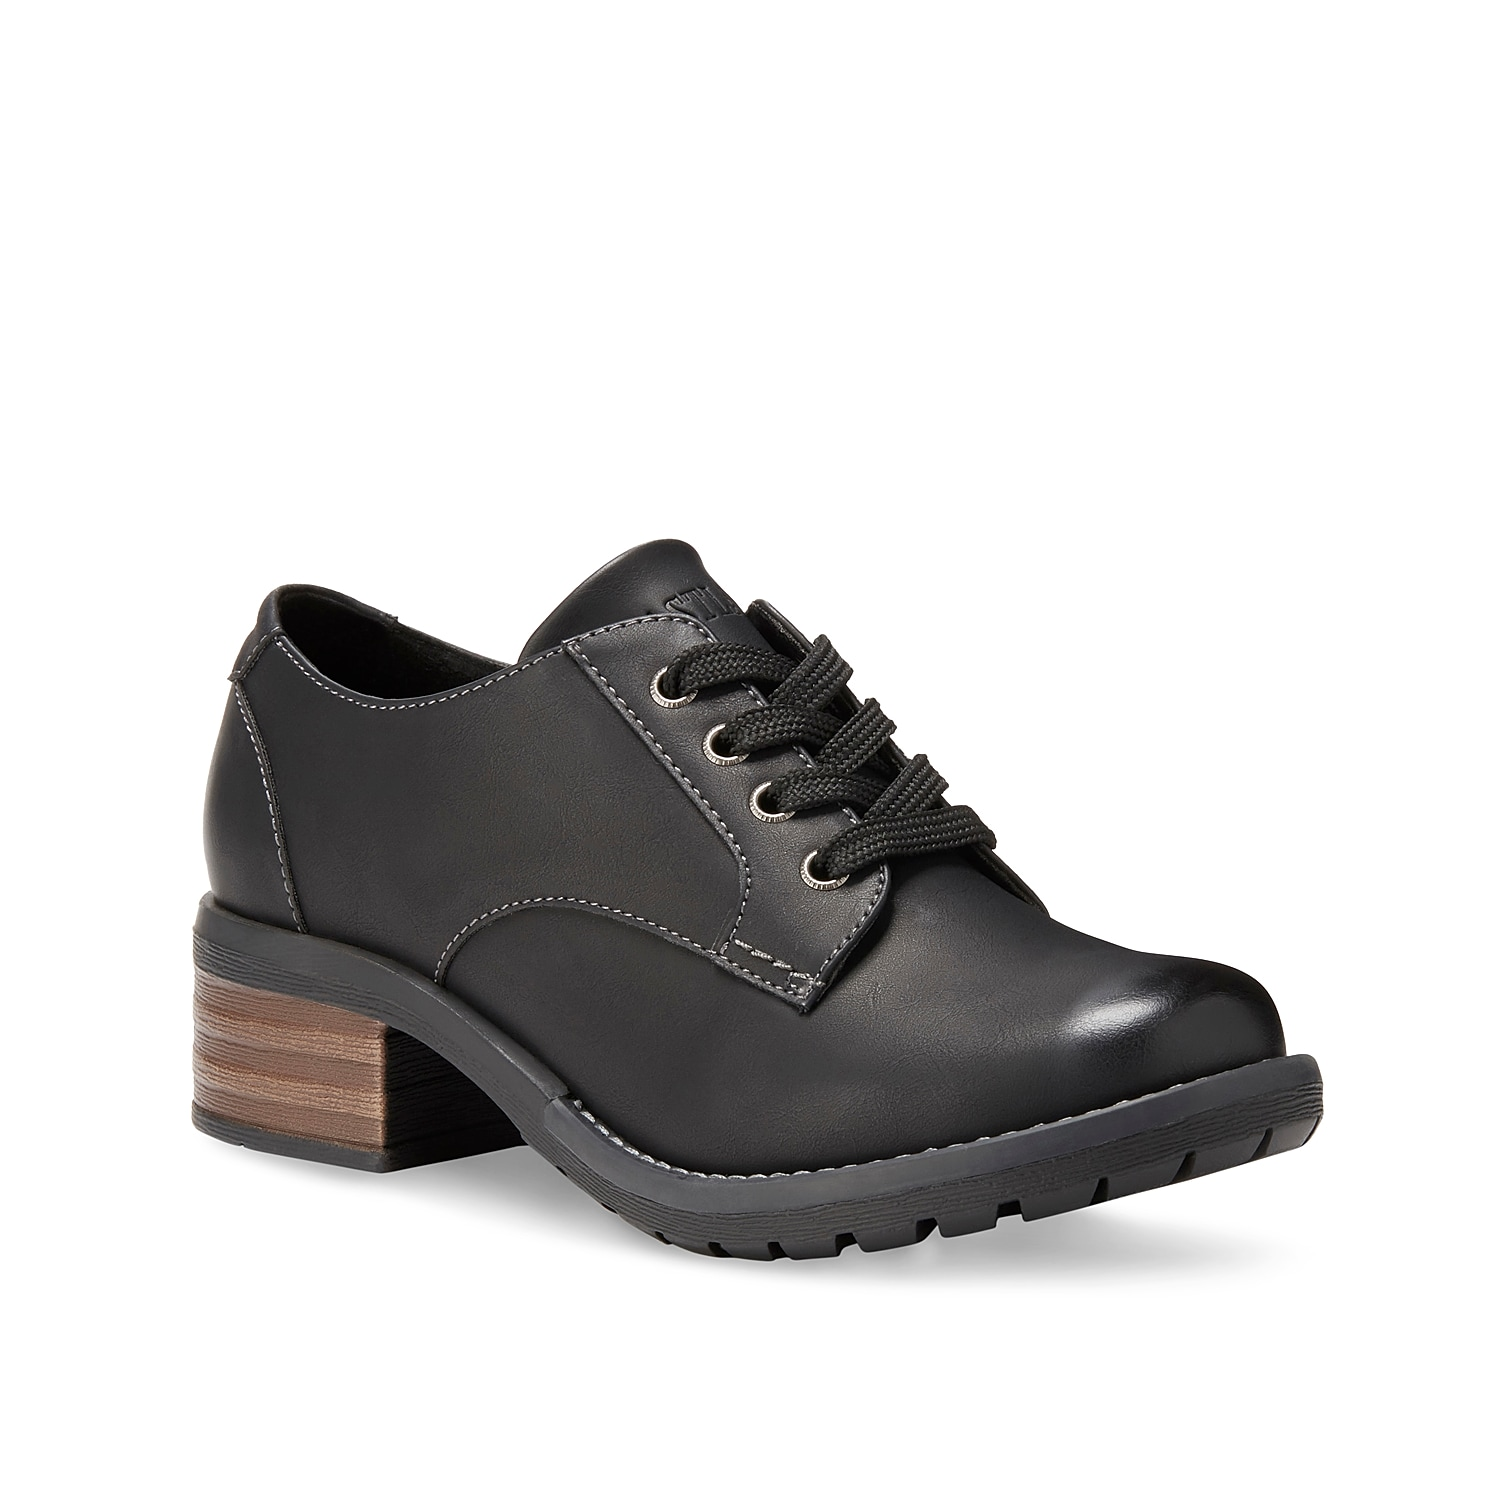 Complement your preppy look with the Trish oxford from Eastland. This bootie silhouette features a smooth leather construction and a cushioned Memory Foam insole for never-ending comfort.